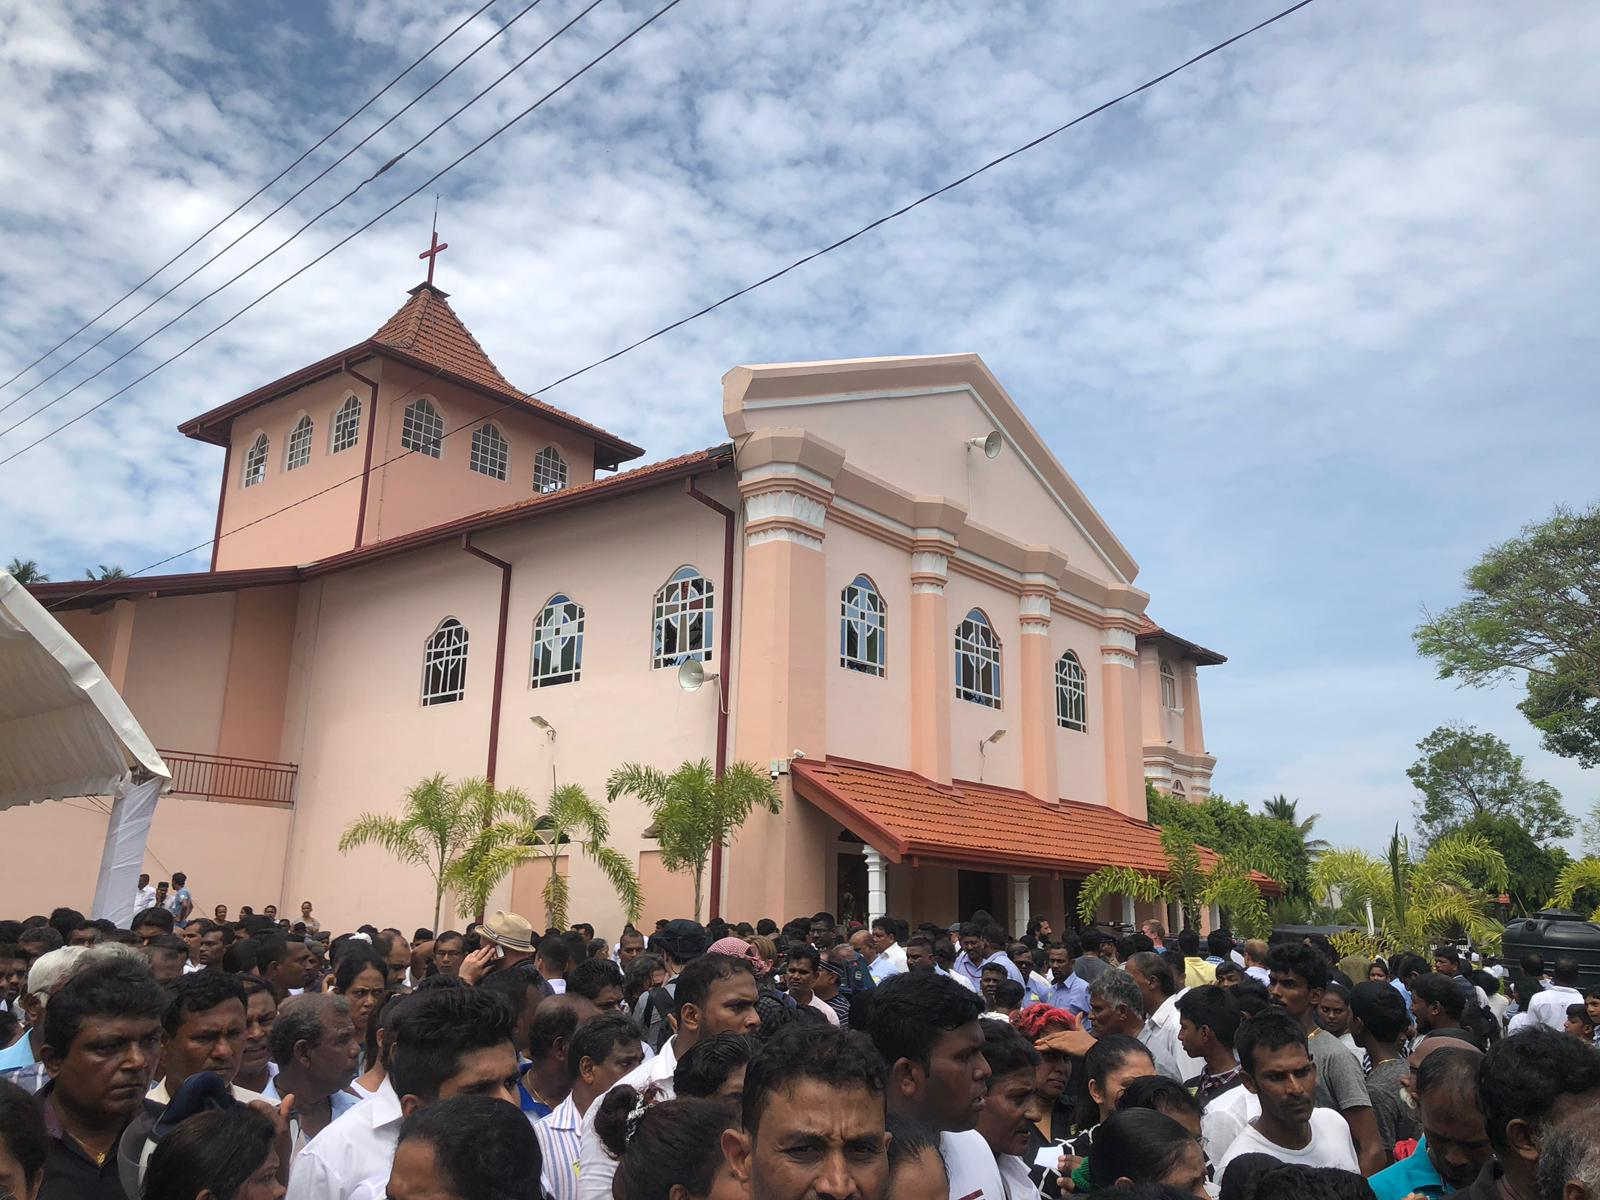 St. Sebastian's Church in Negombo, the site of one of the targeted bombings on Sunday.